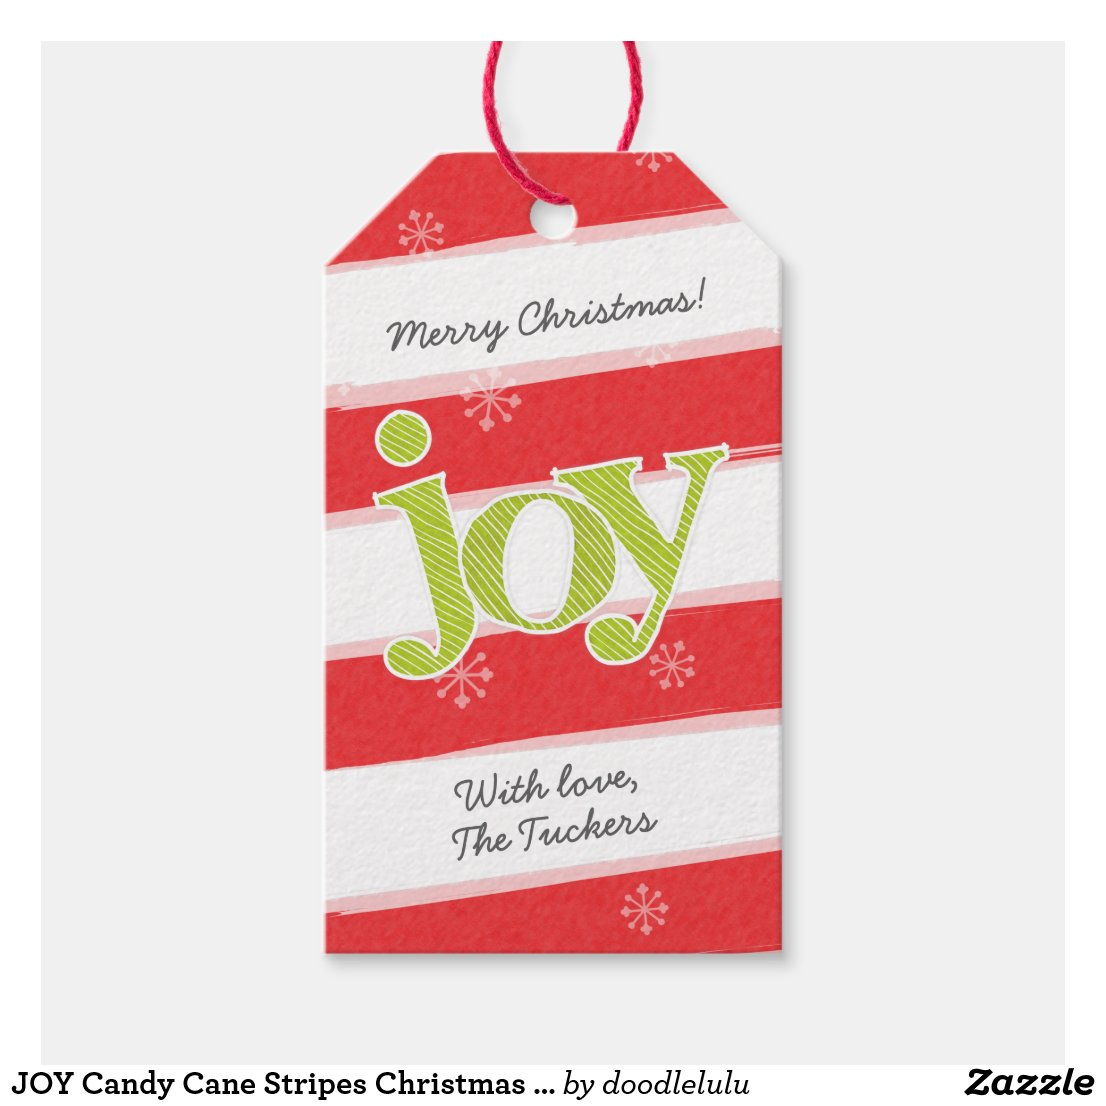 JOY Candy Cane Stripes Christmas Red Green Gift Tags